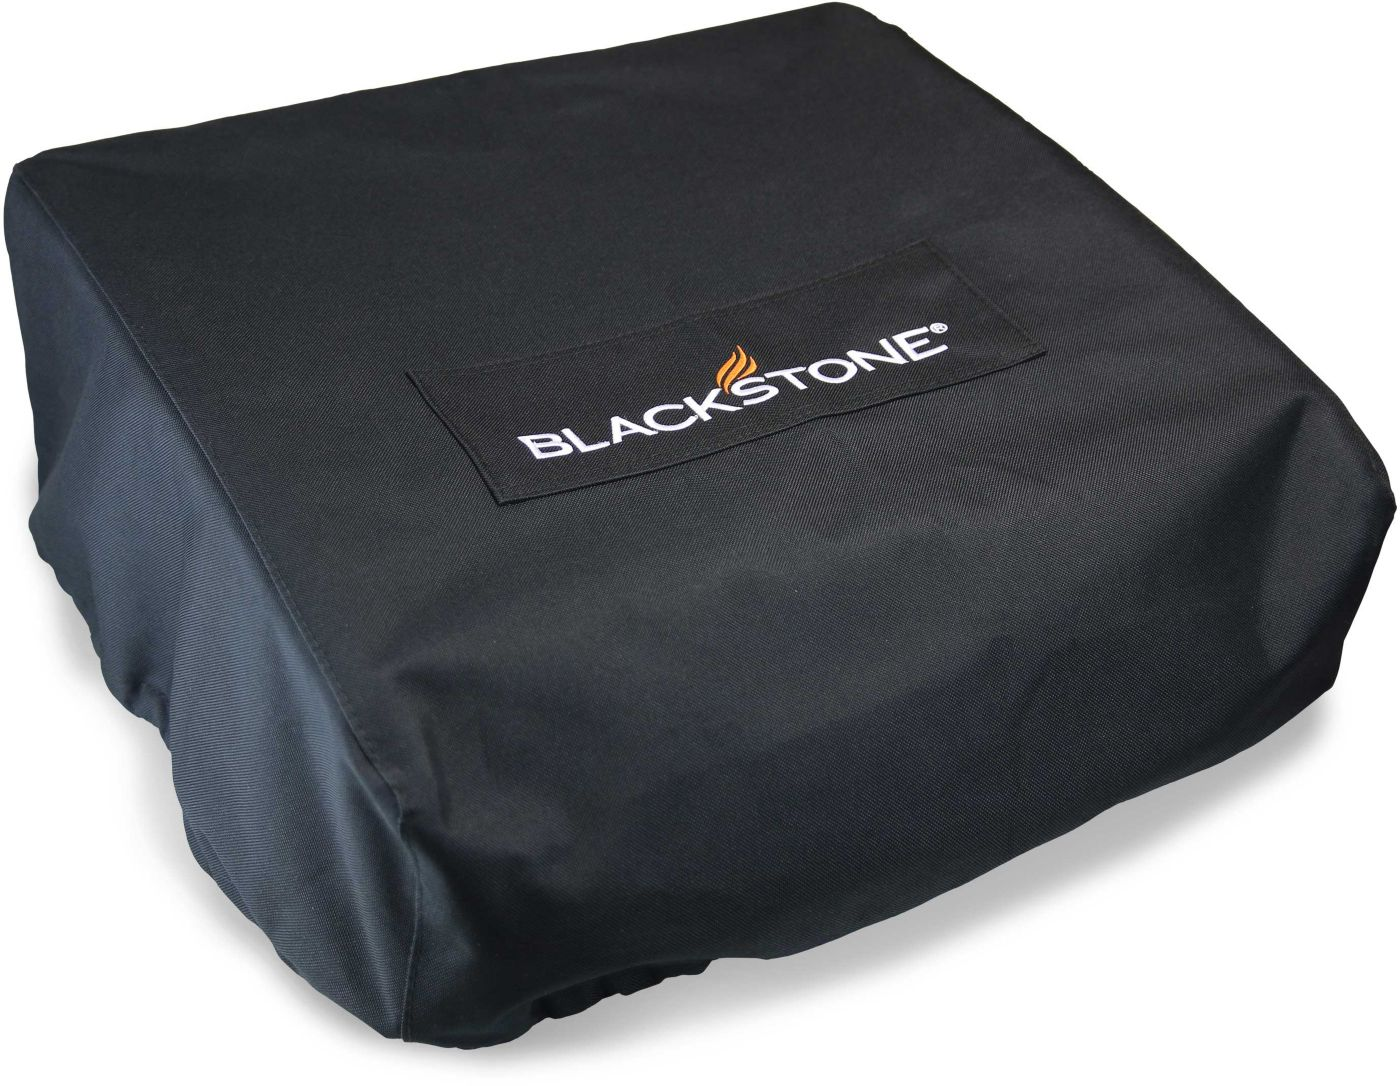 Blackstone 17'' Griddle Cover and Carry Bag